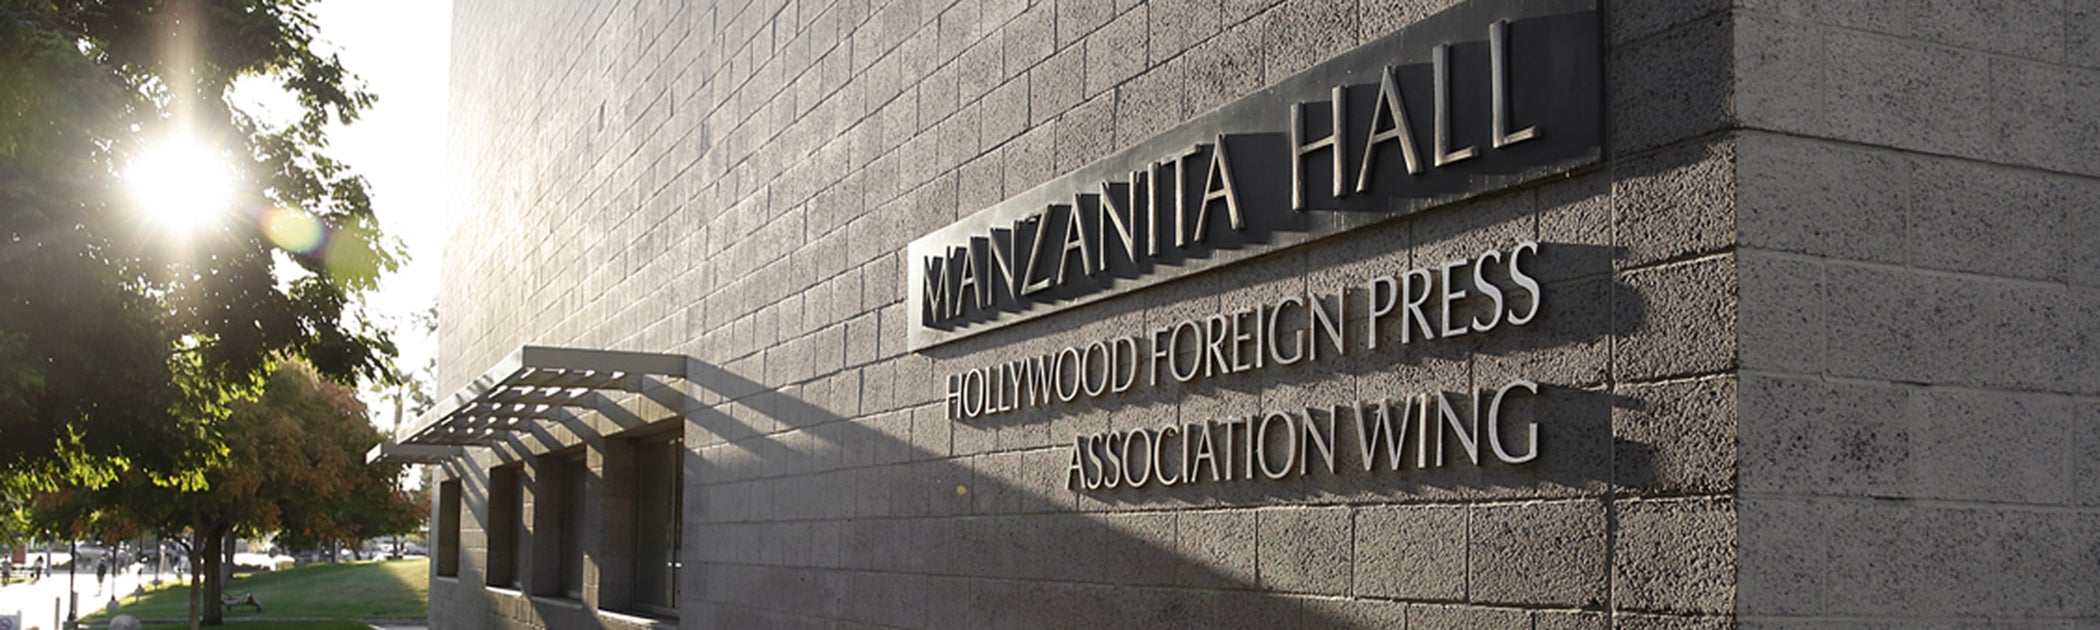 "South wing of CSUN's Manzanita Hall was named the ""Hollywood Foreign Press Association Wing"""